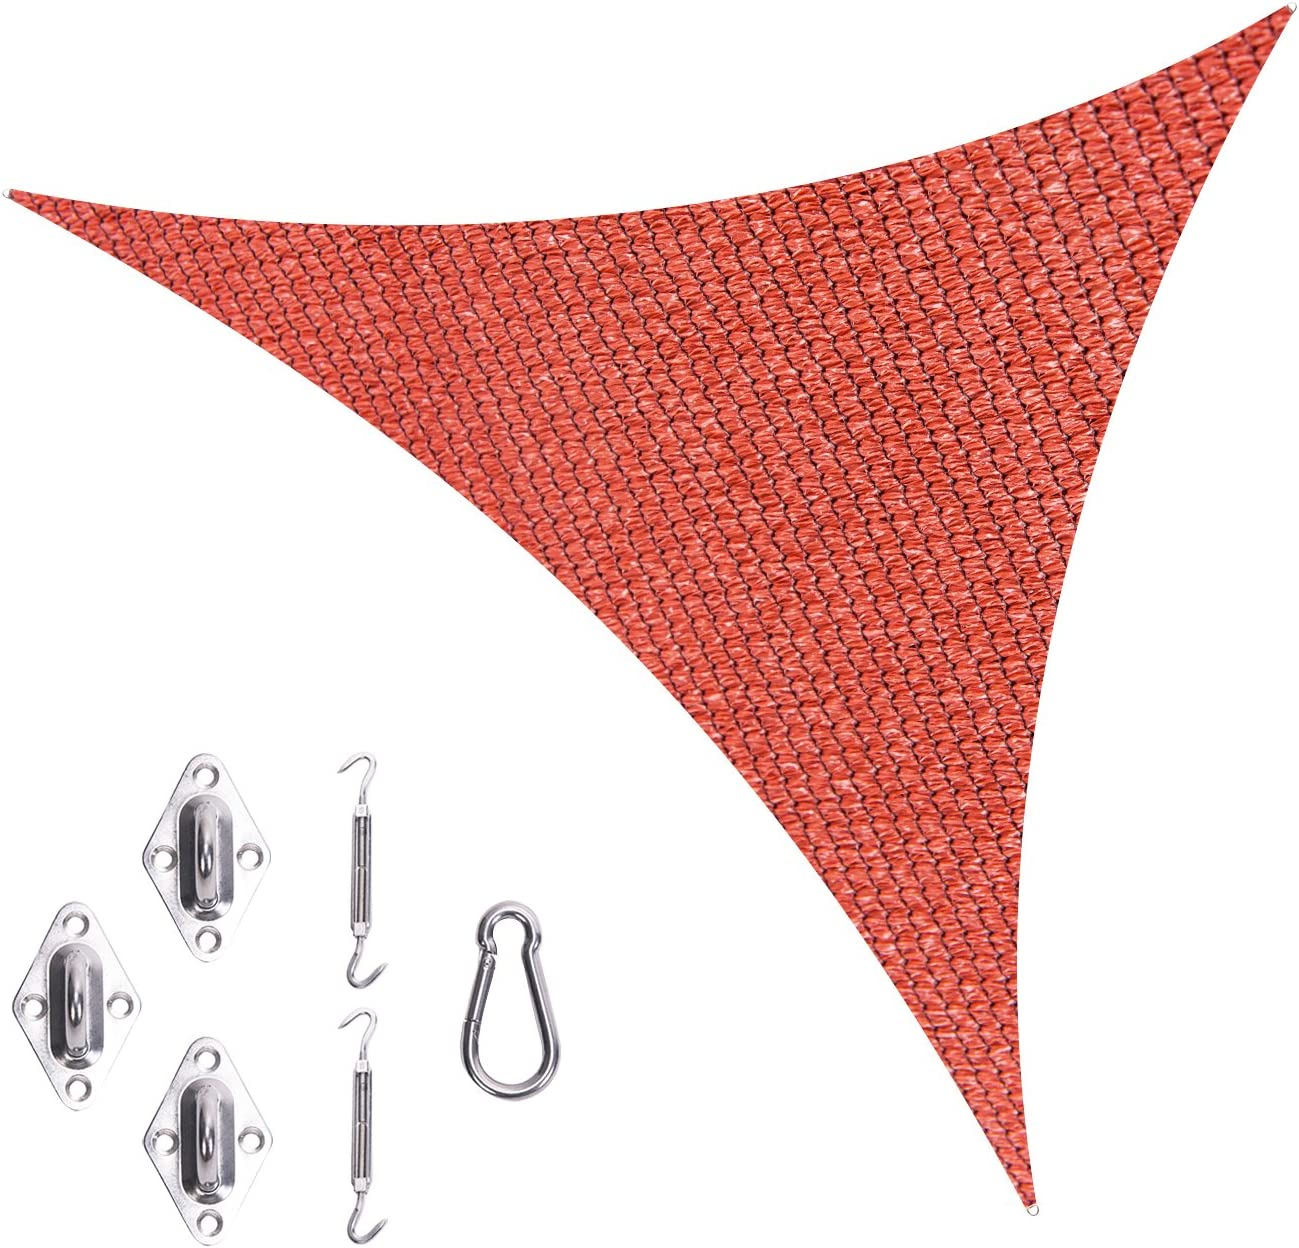 Cool Area Sun Shade Sail with Stainless Steel Hardware Kit,Triangle 16 5 x 16 5 x 16 5 , Terra